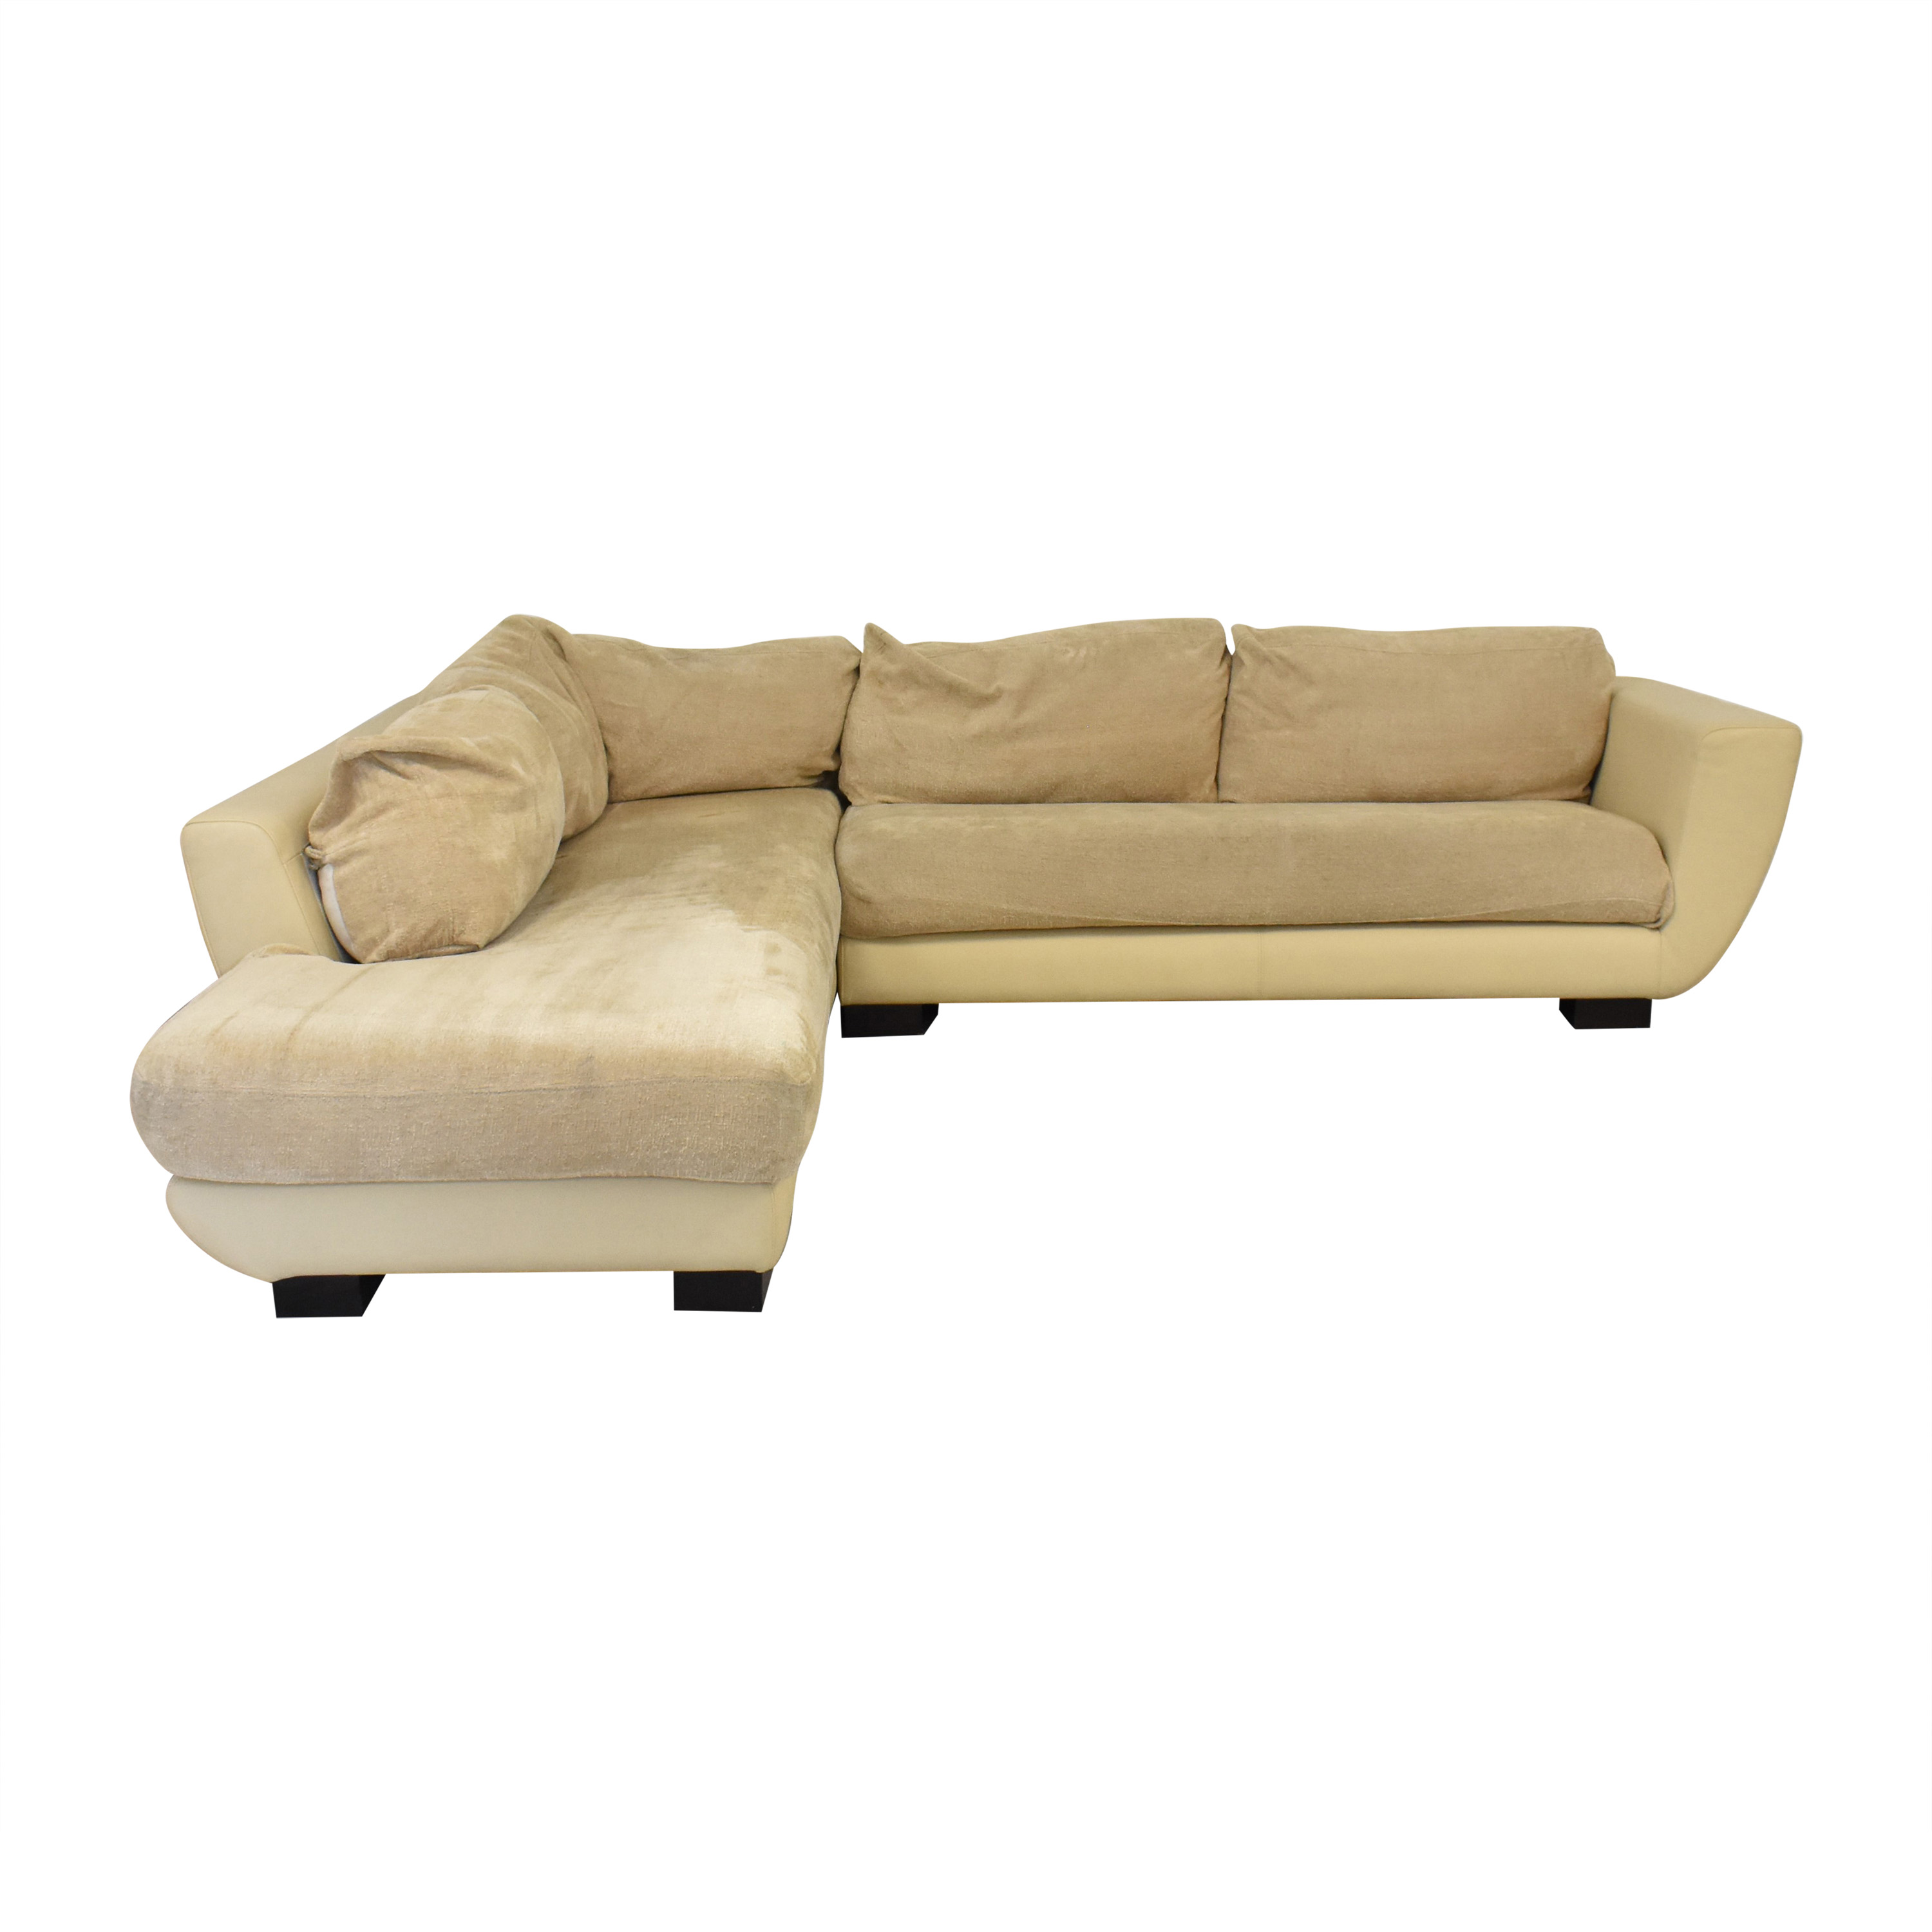 Maurice Villency Maurice Villency Sectional Sofa nyc